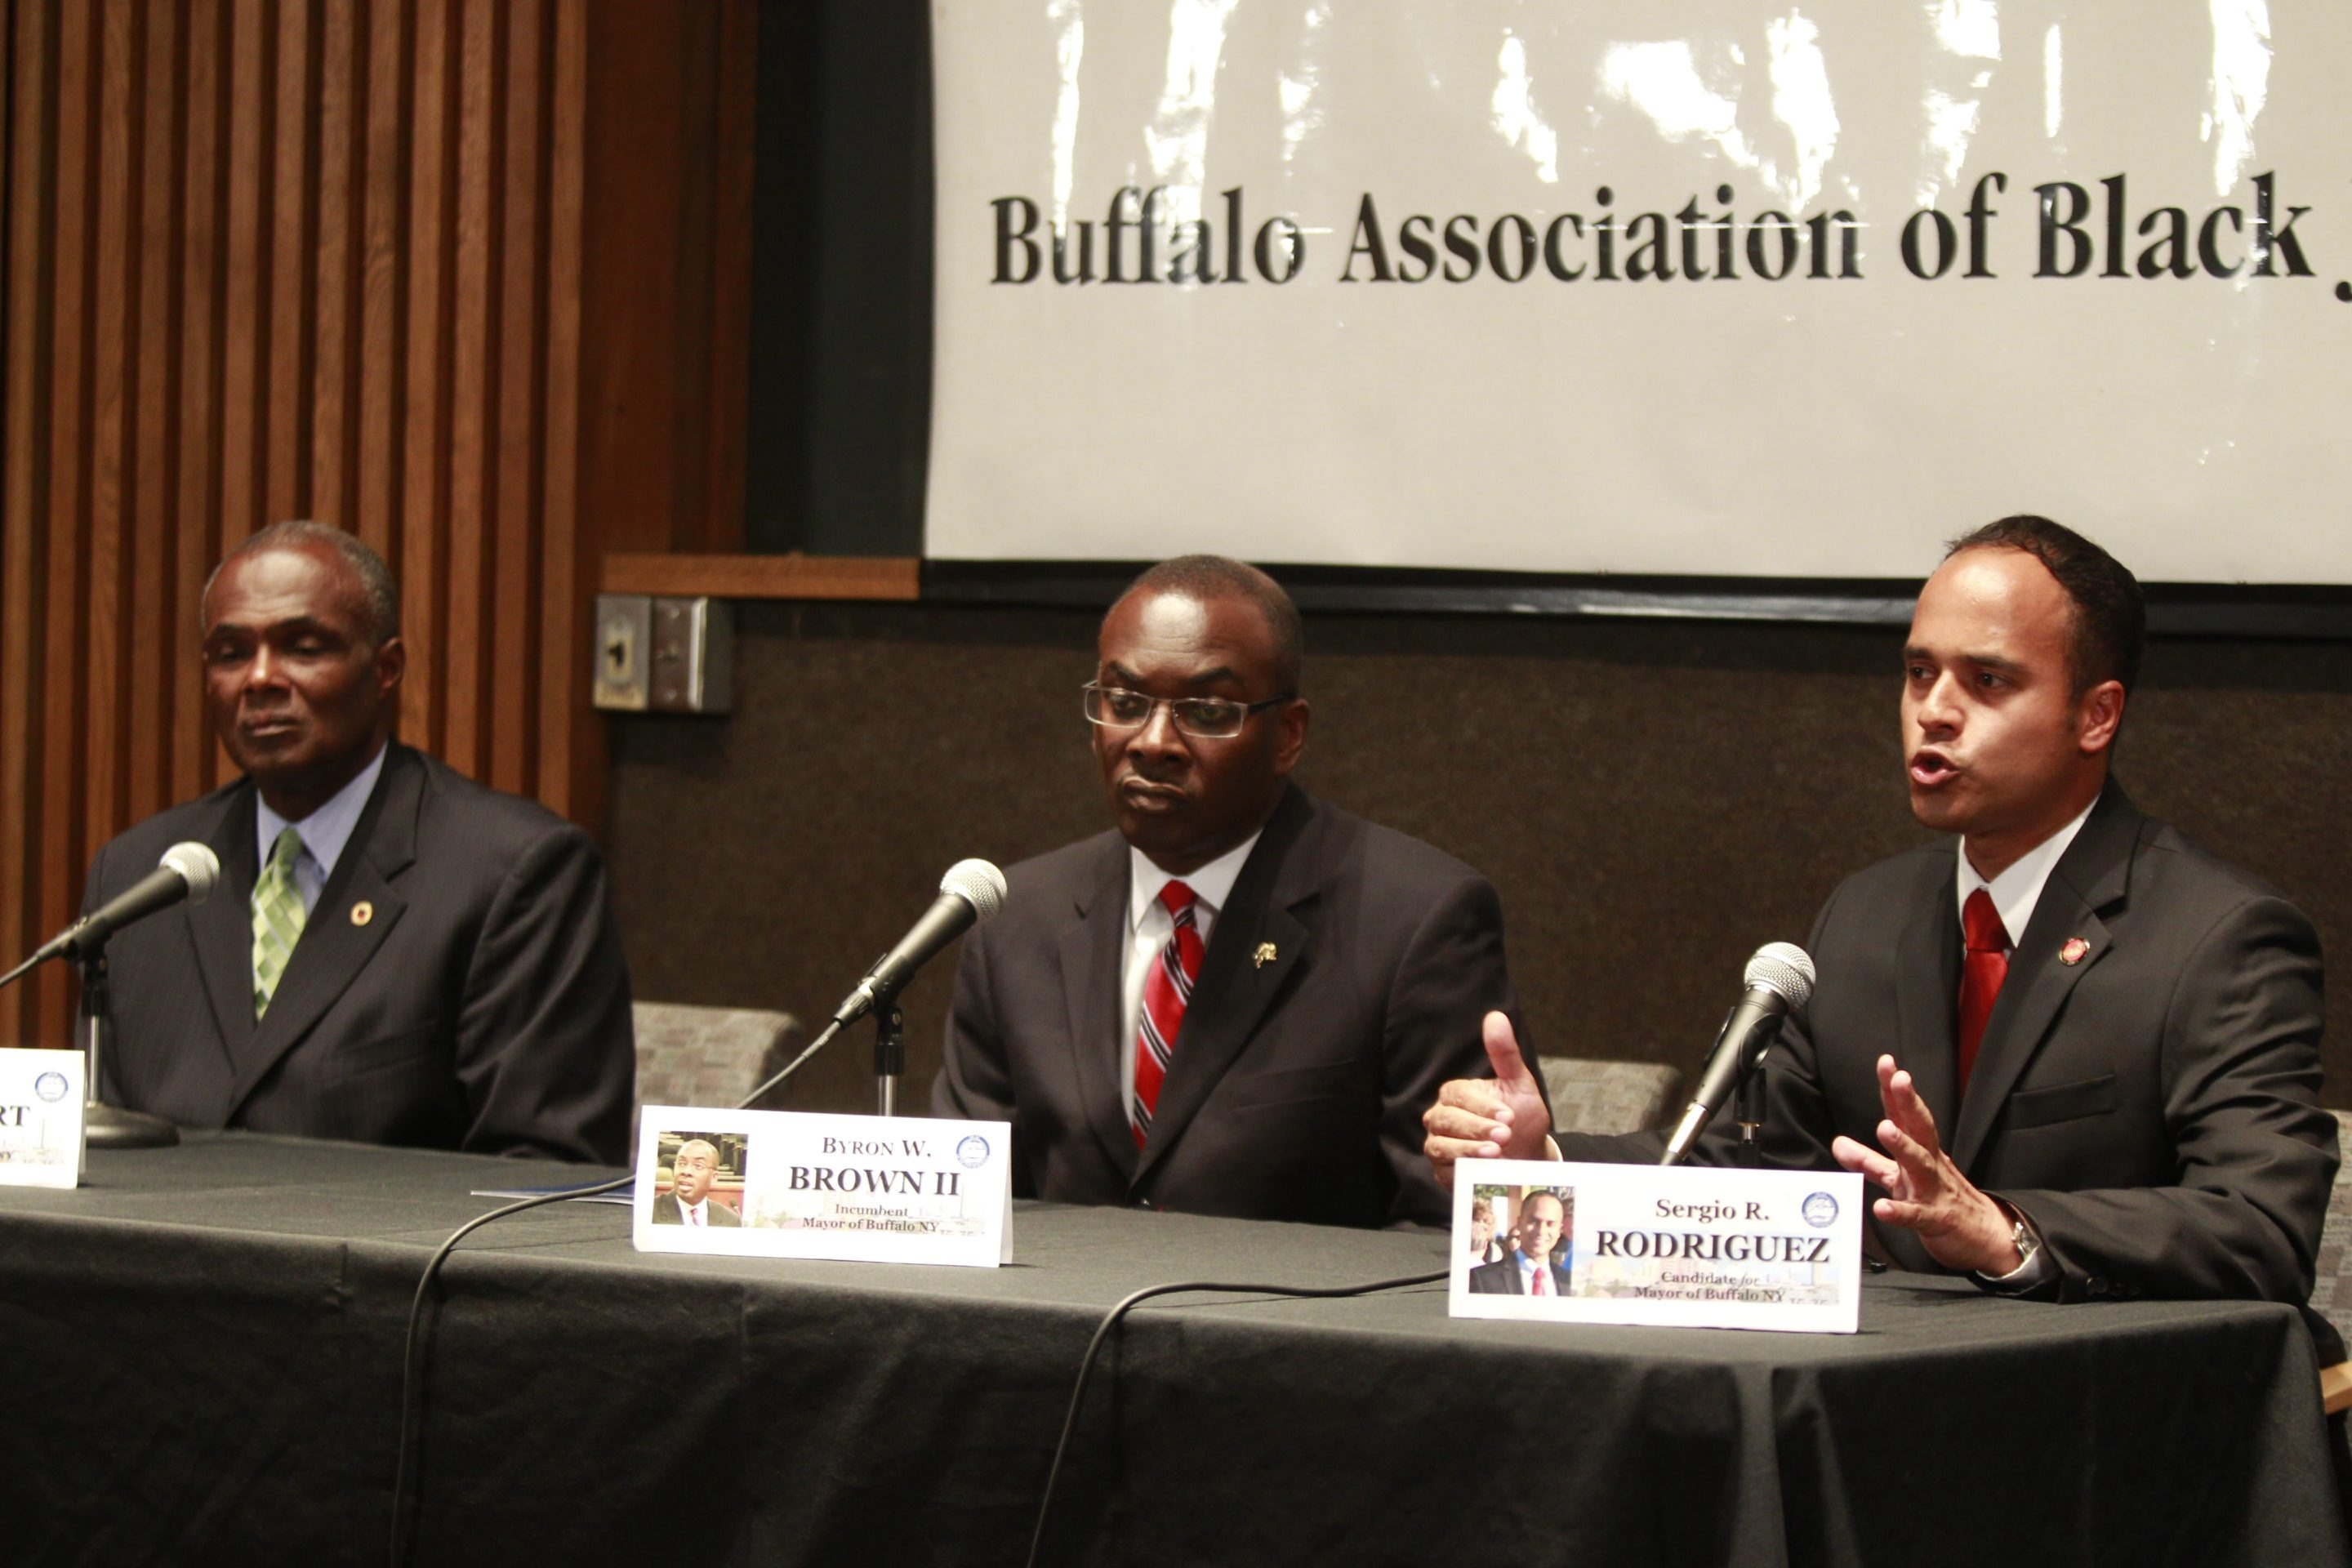 Less than a week after the first mayoral debate among candidates Byron Brown, center, Bernard Tolbert, left, and Sergio Rodriguez, a Buffalo News/WGRZ/Siena poll shows the incumbent holding a comfortable lead over Tolbert, his challenger for the Democratic line.